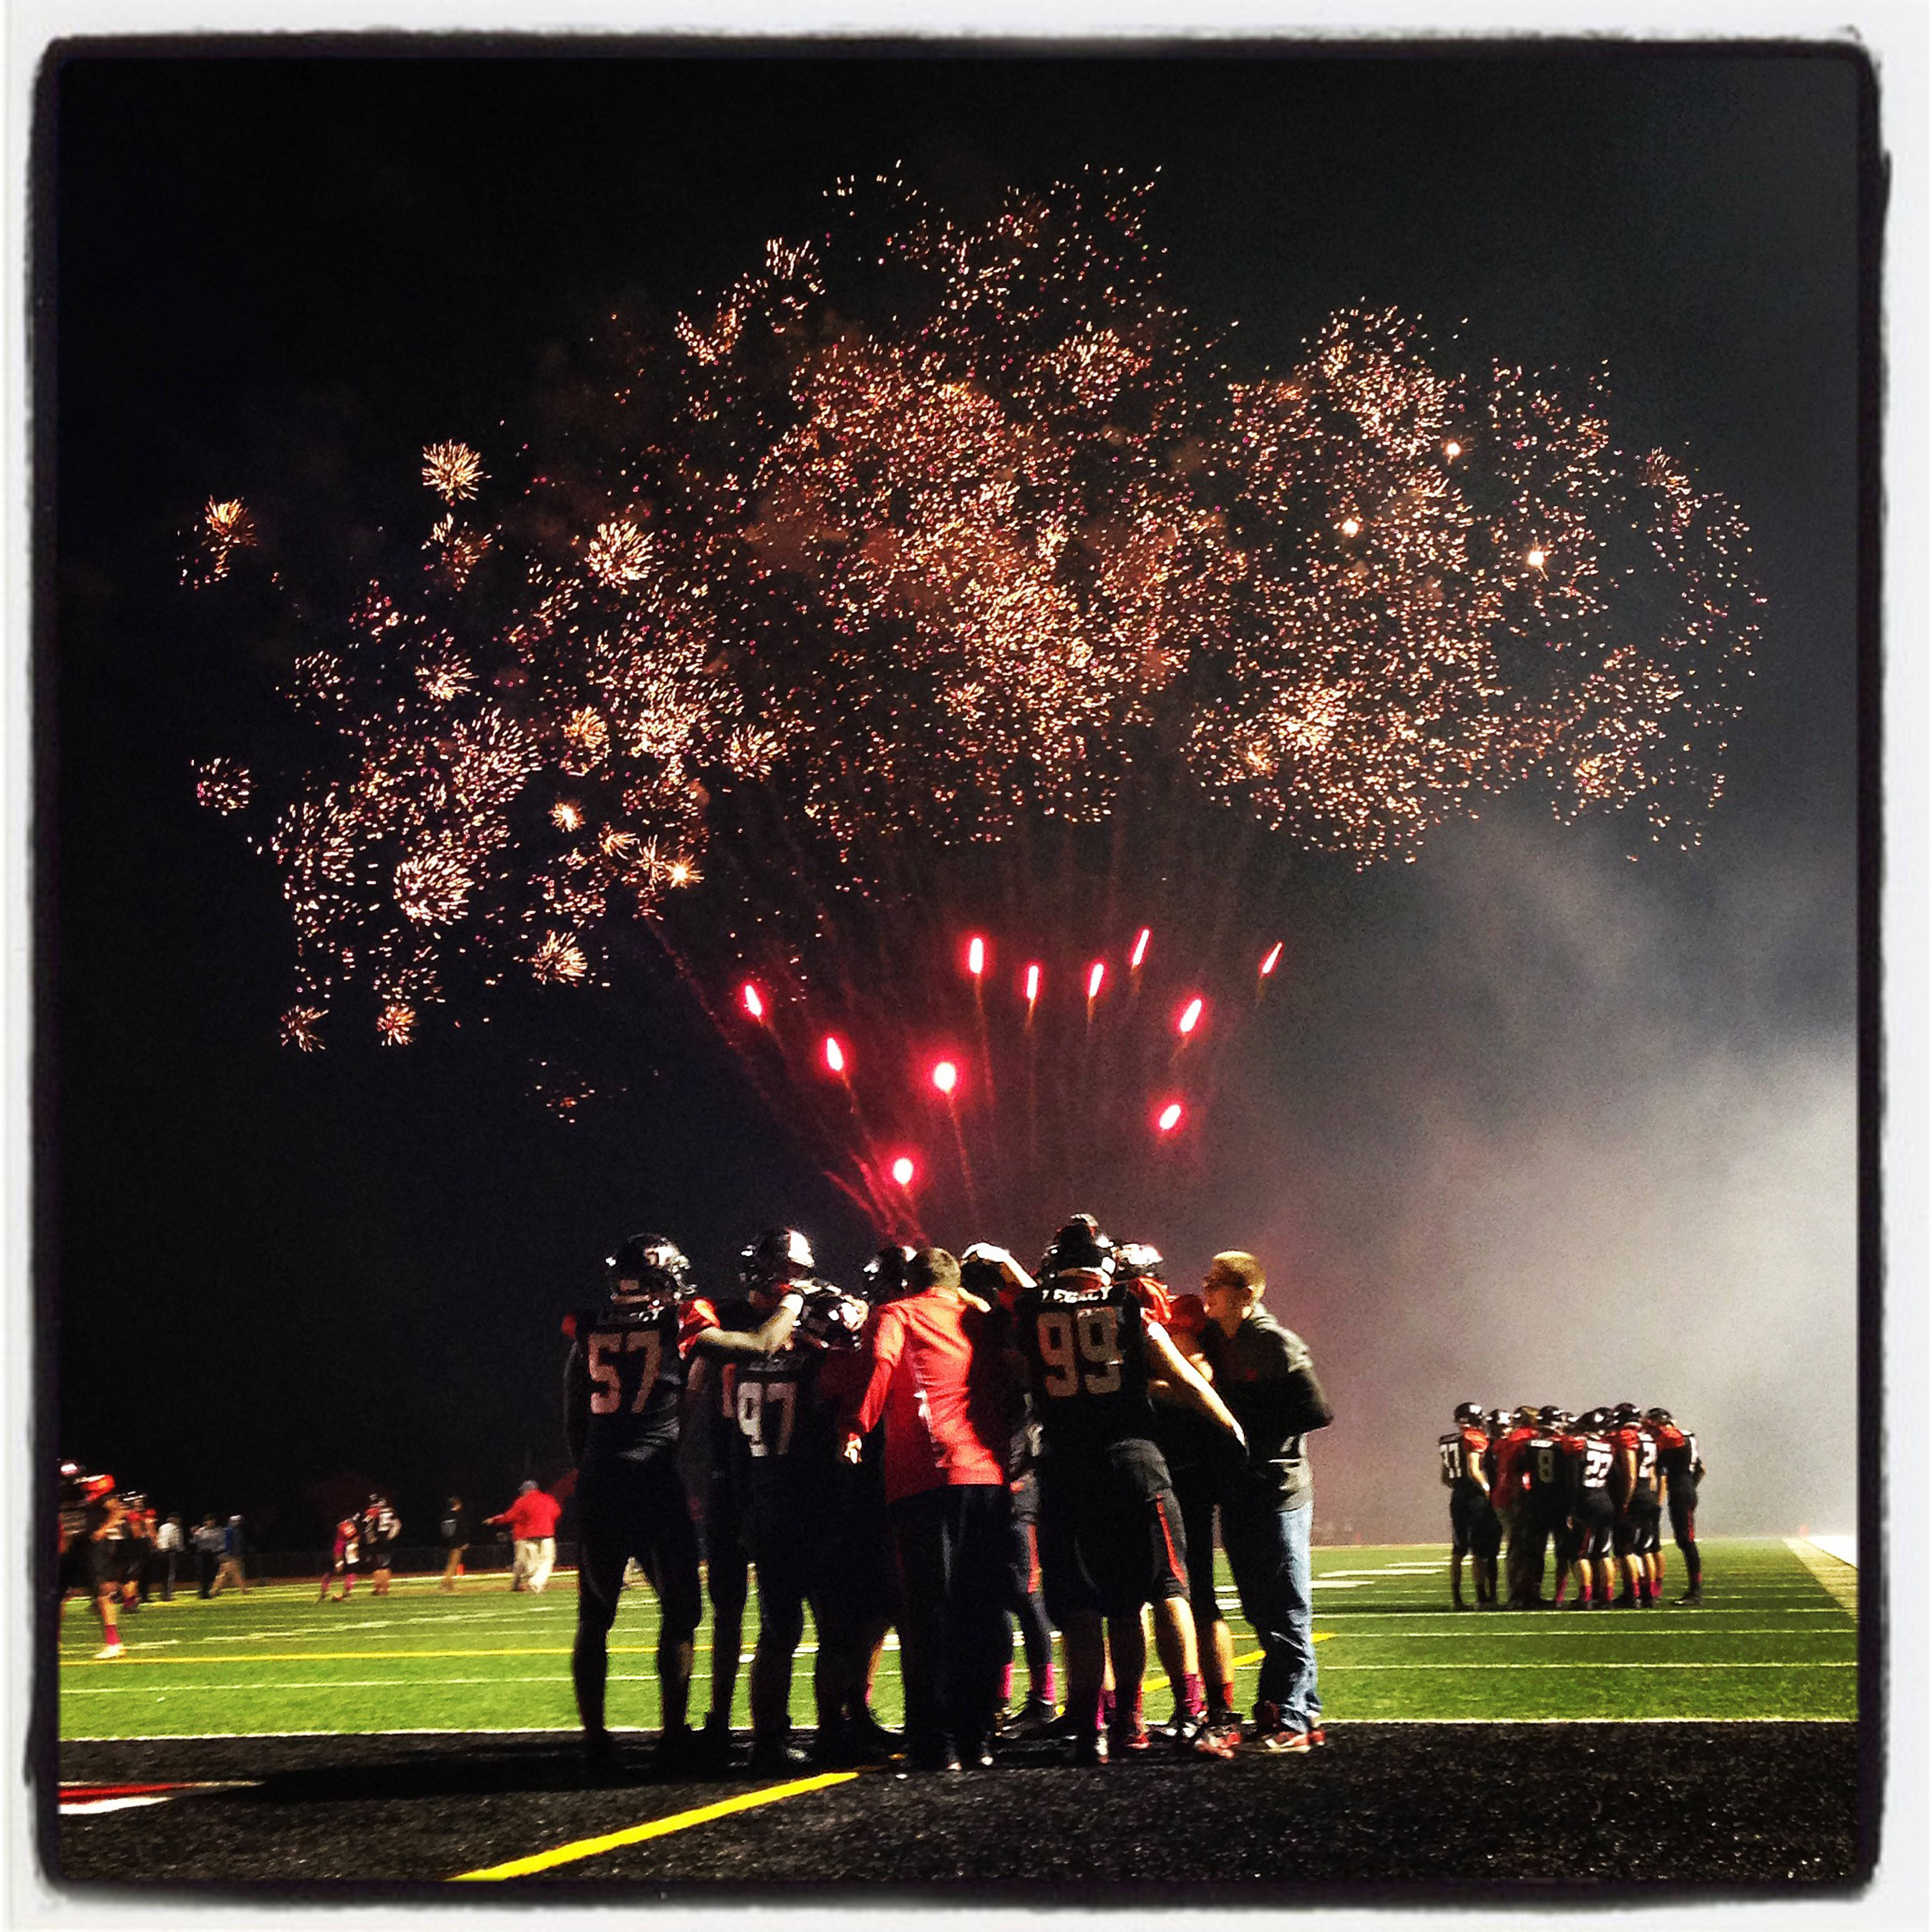 Fireworks entertain fans in the stands while Huntley High School varsity football players huddle up following pre-game warm-up drills.